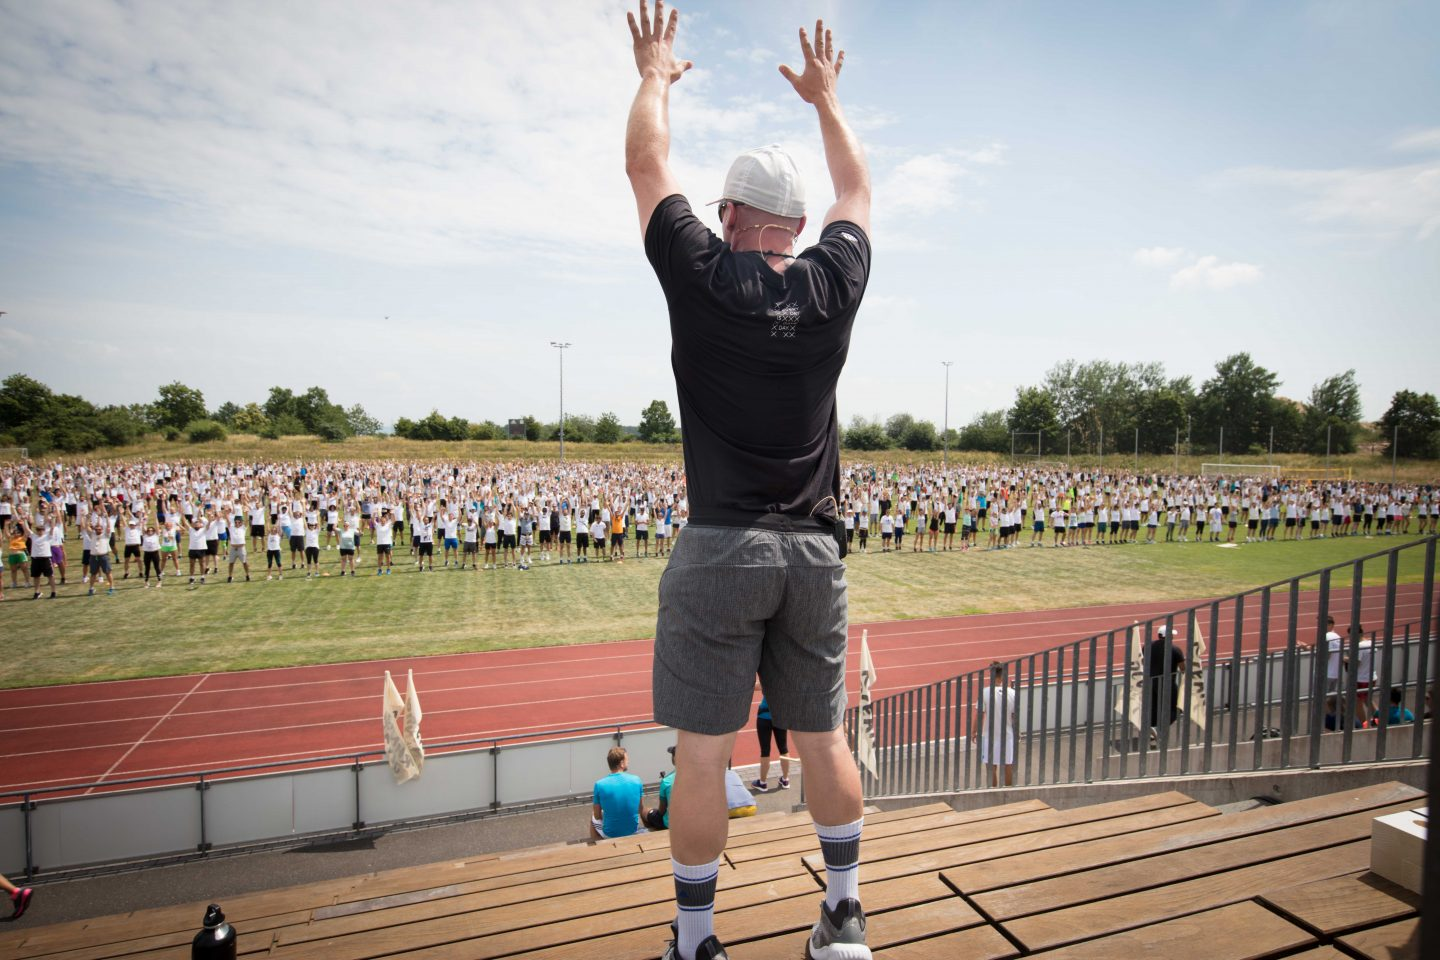 Coach motivating the crowd at the run for the oceans in Herzogenaurach | ocean plastic